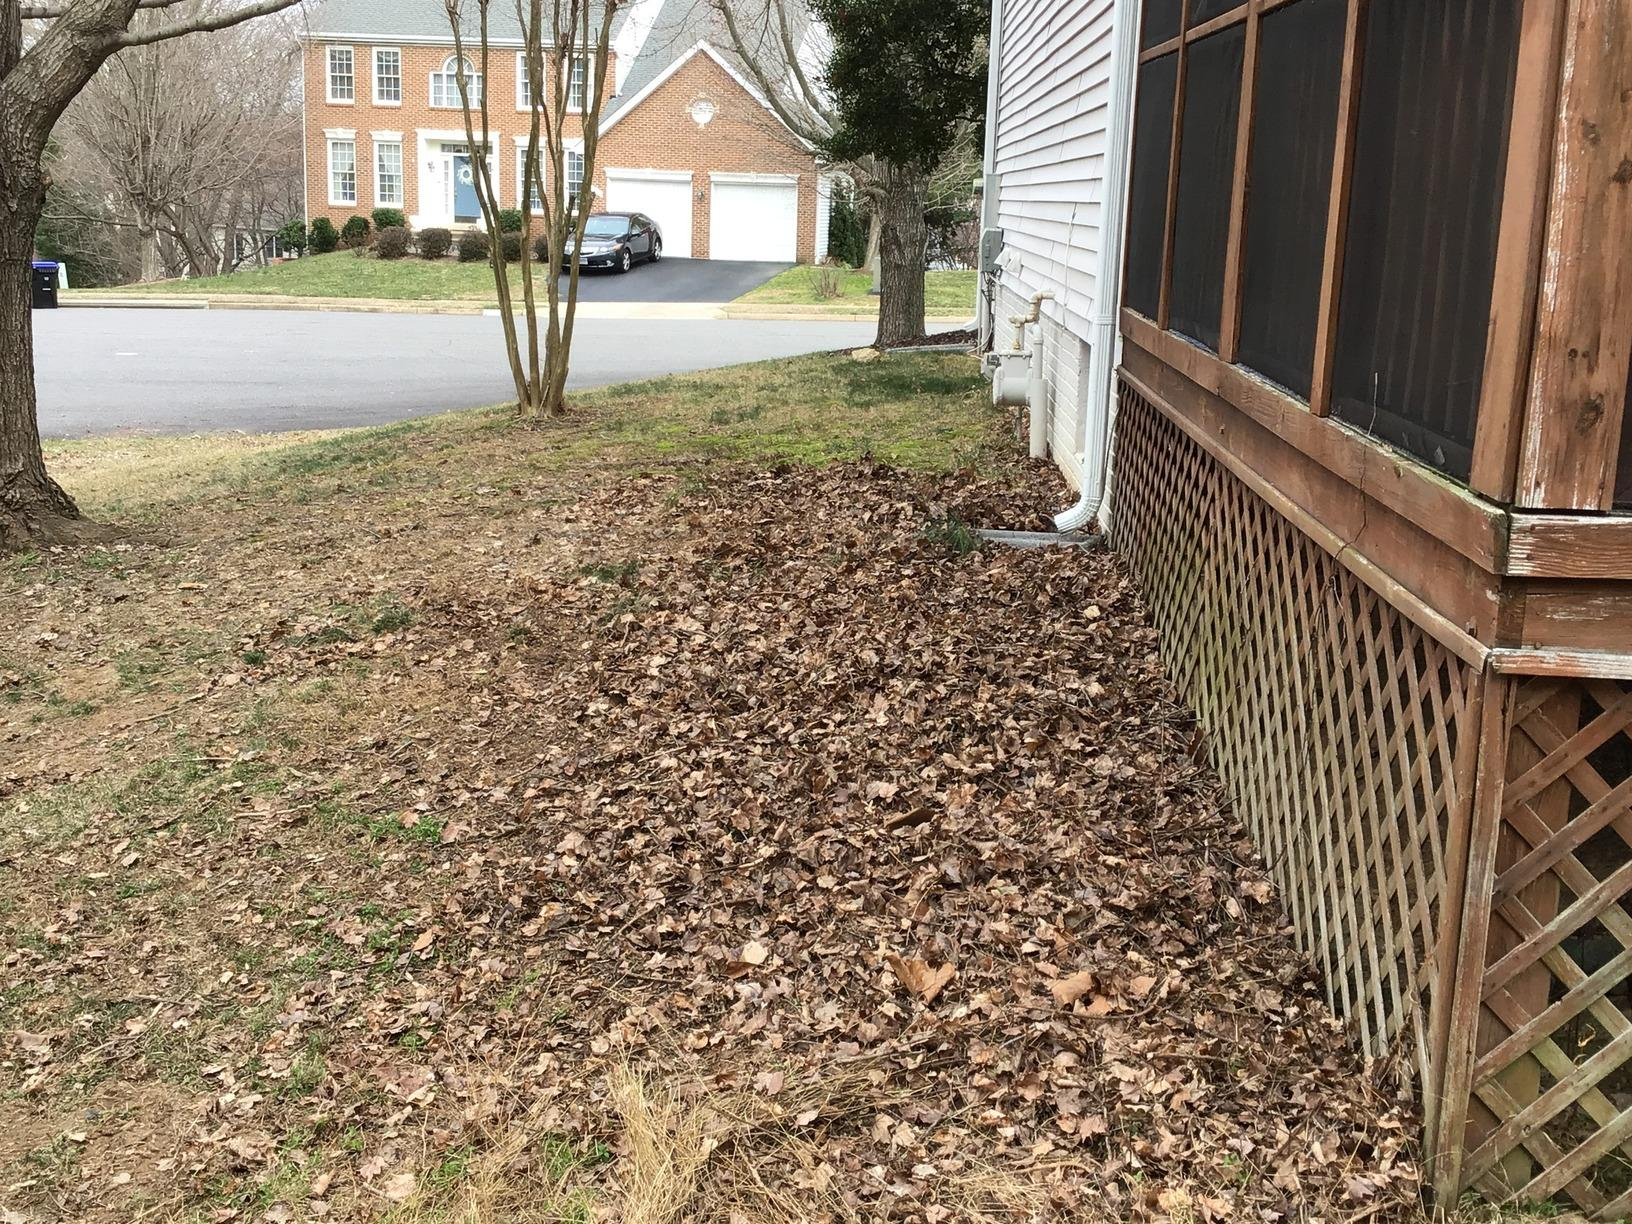 Yard Debris Removal in Fairfax Station, VA - After Photo